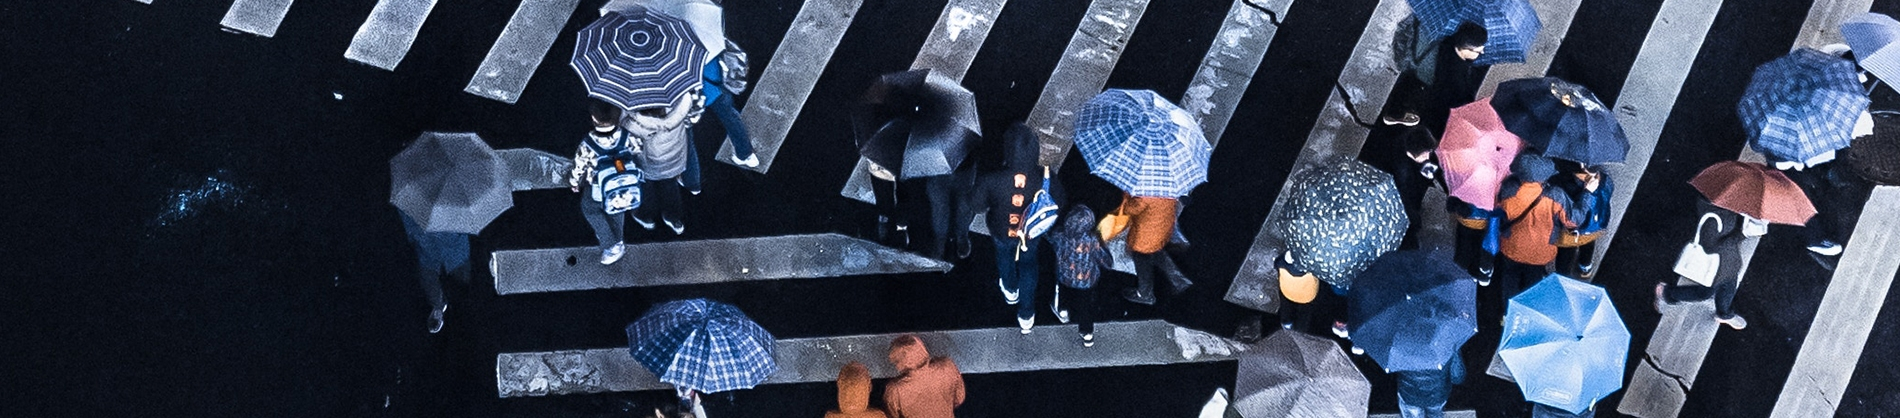 A crowd with umbrellas crossing a large zebra crossing